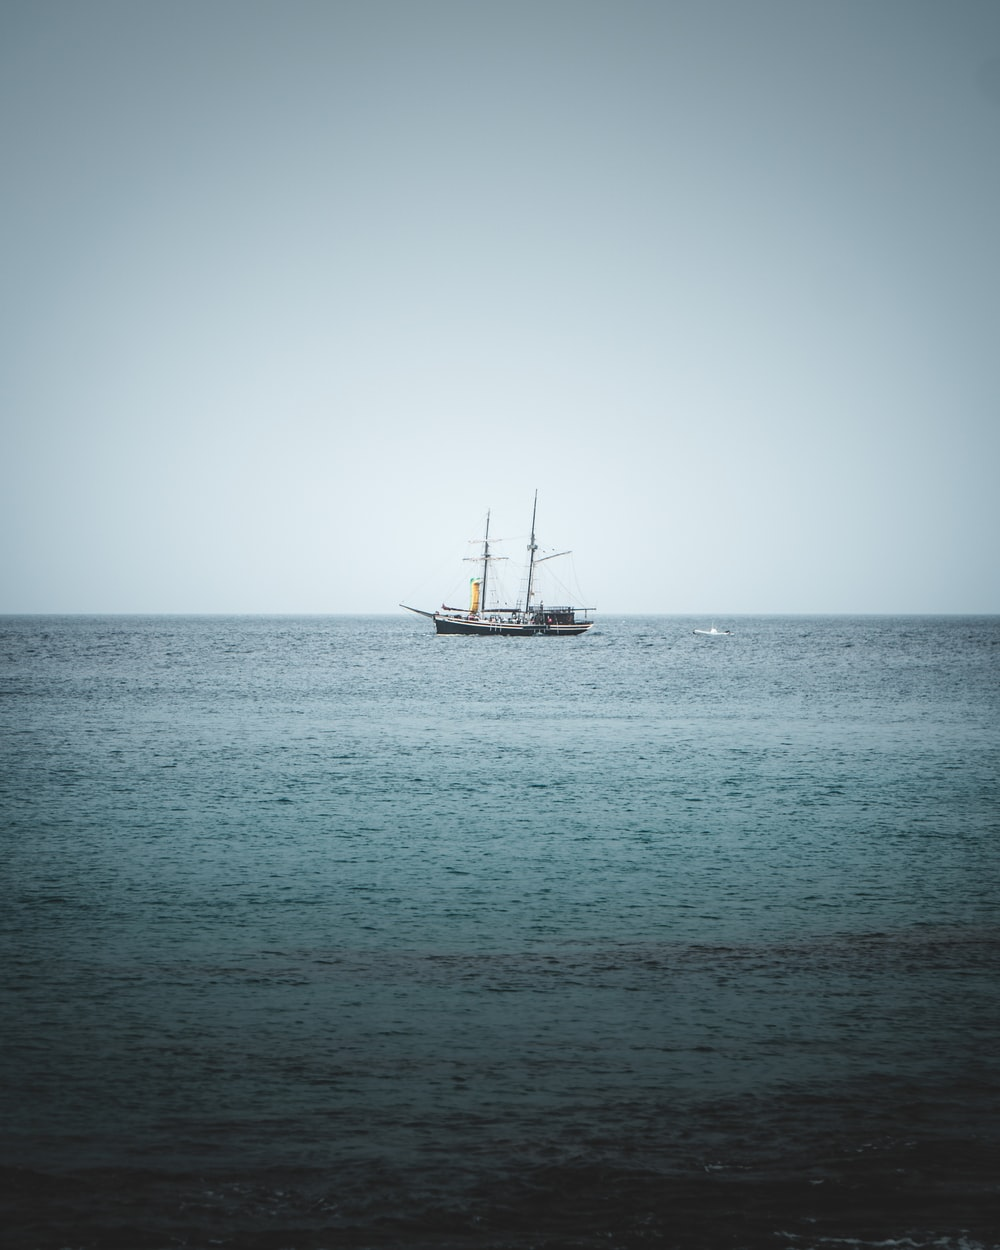 white and black boat on sea under white sky during daytime